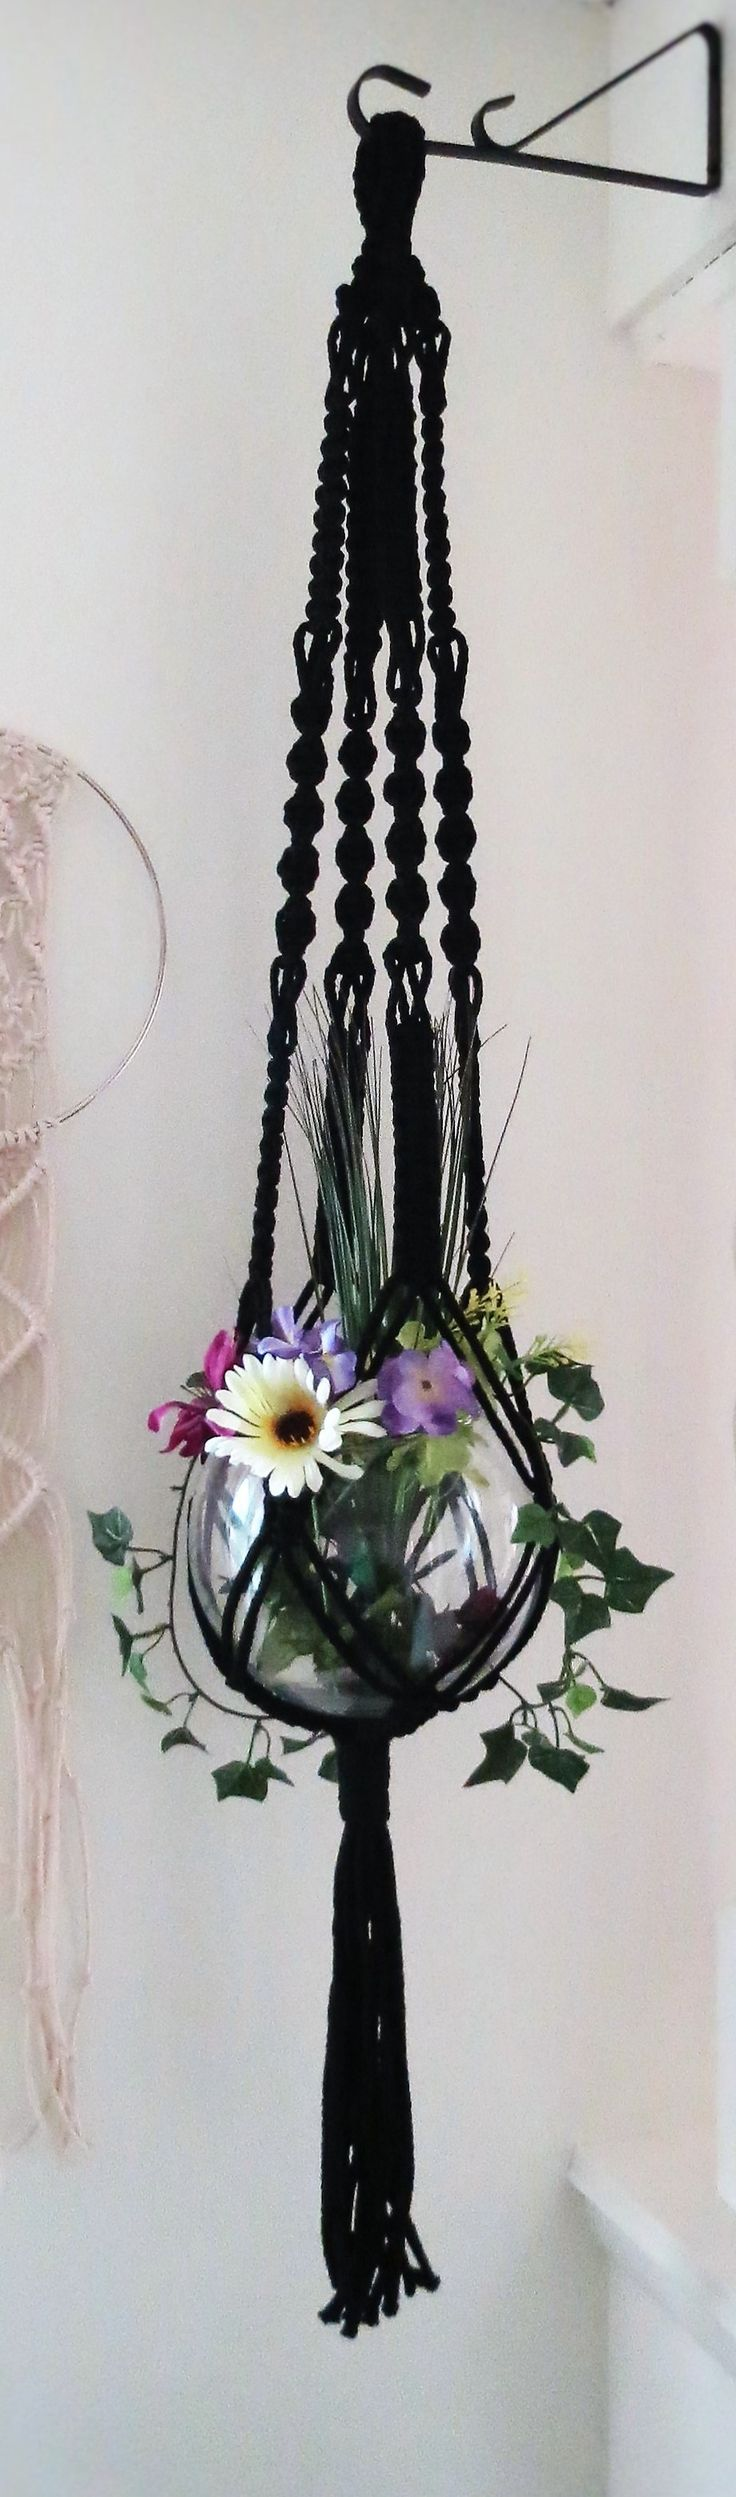 best 25 70s home decor ideas on pinterest 1970s kitchen 70s black macrame hanging planter gothic pot holder goth macrame plant holder 70s hanging basket gift house plant hanger indoor outdoor